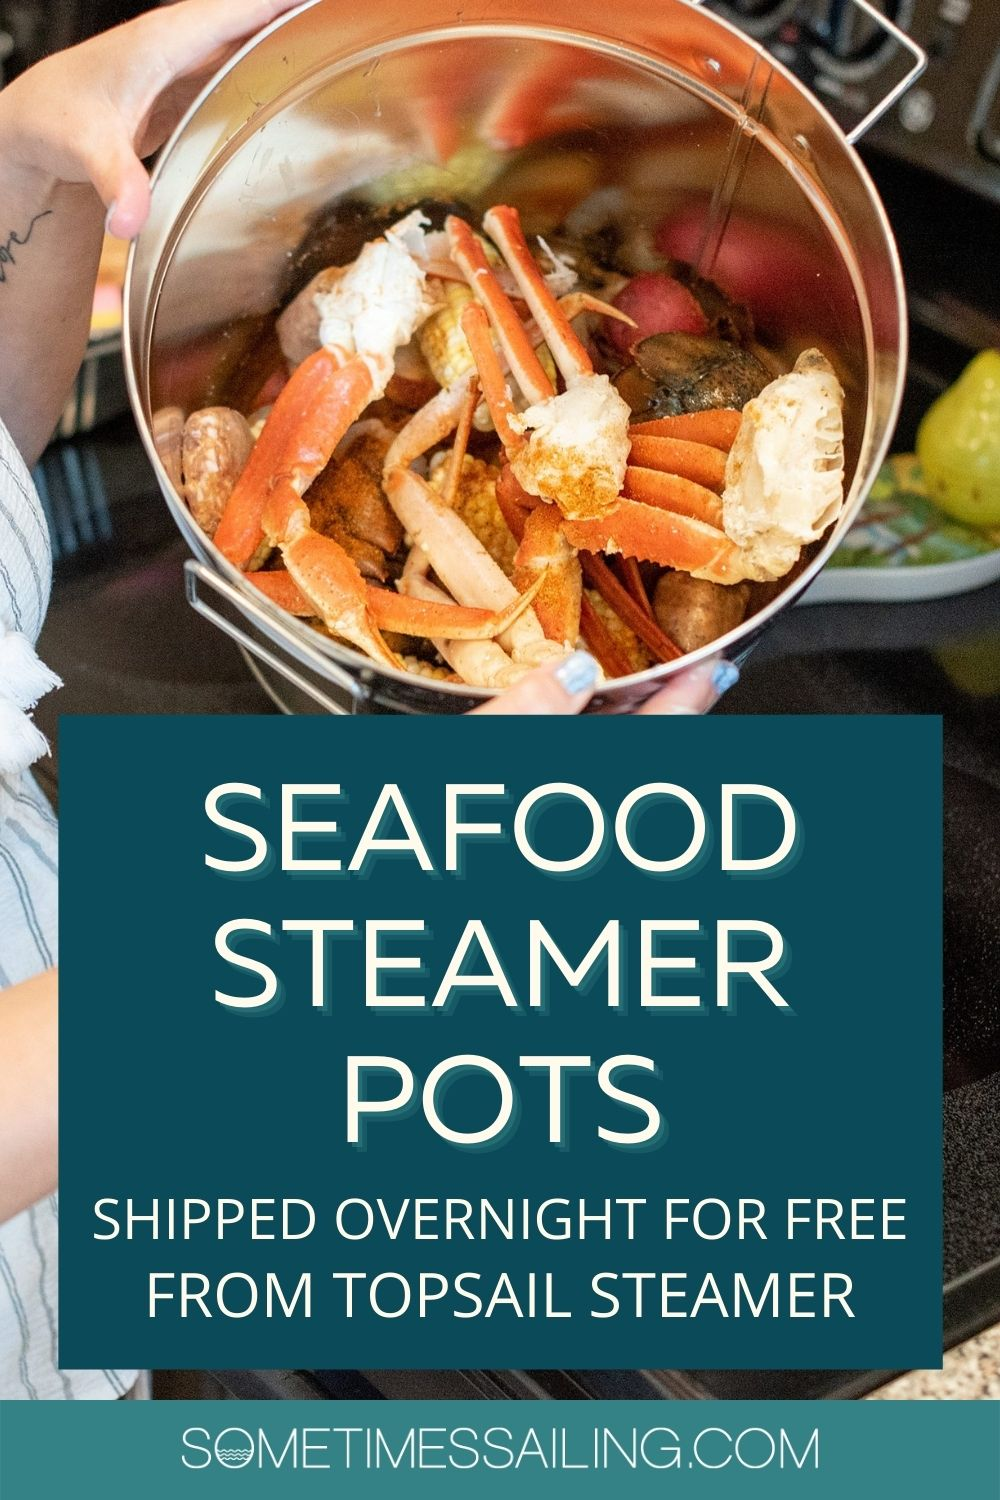 Pinterest graphic for Seafood Steamer Pots that ship overnight for free from Topsail Steamer.